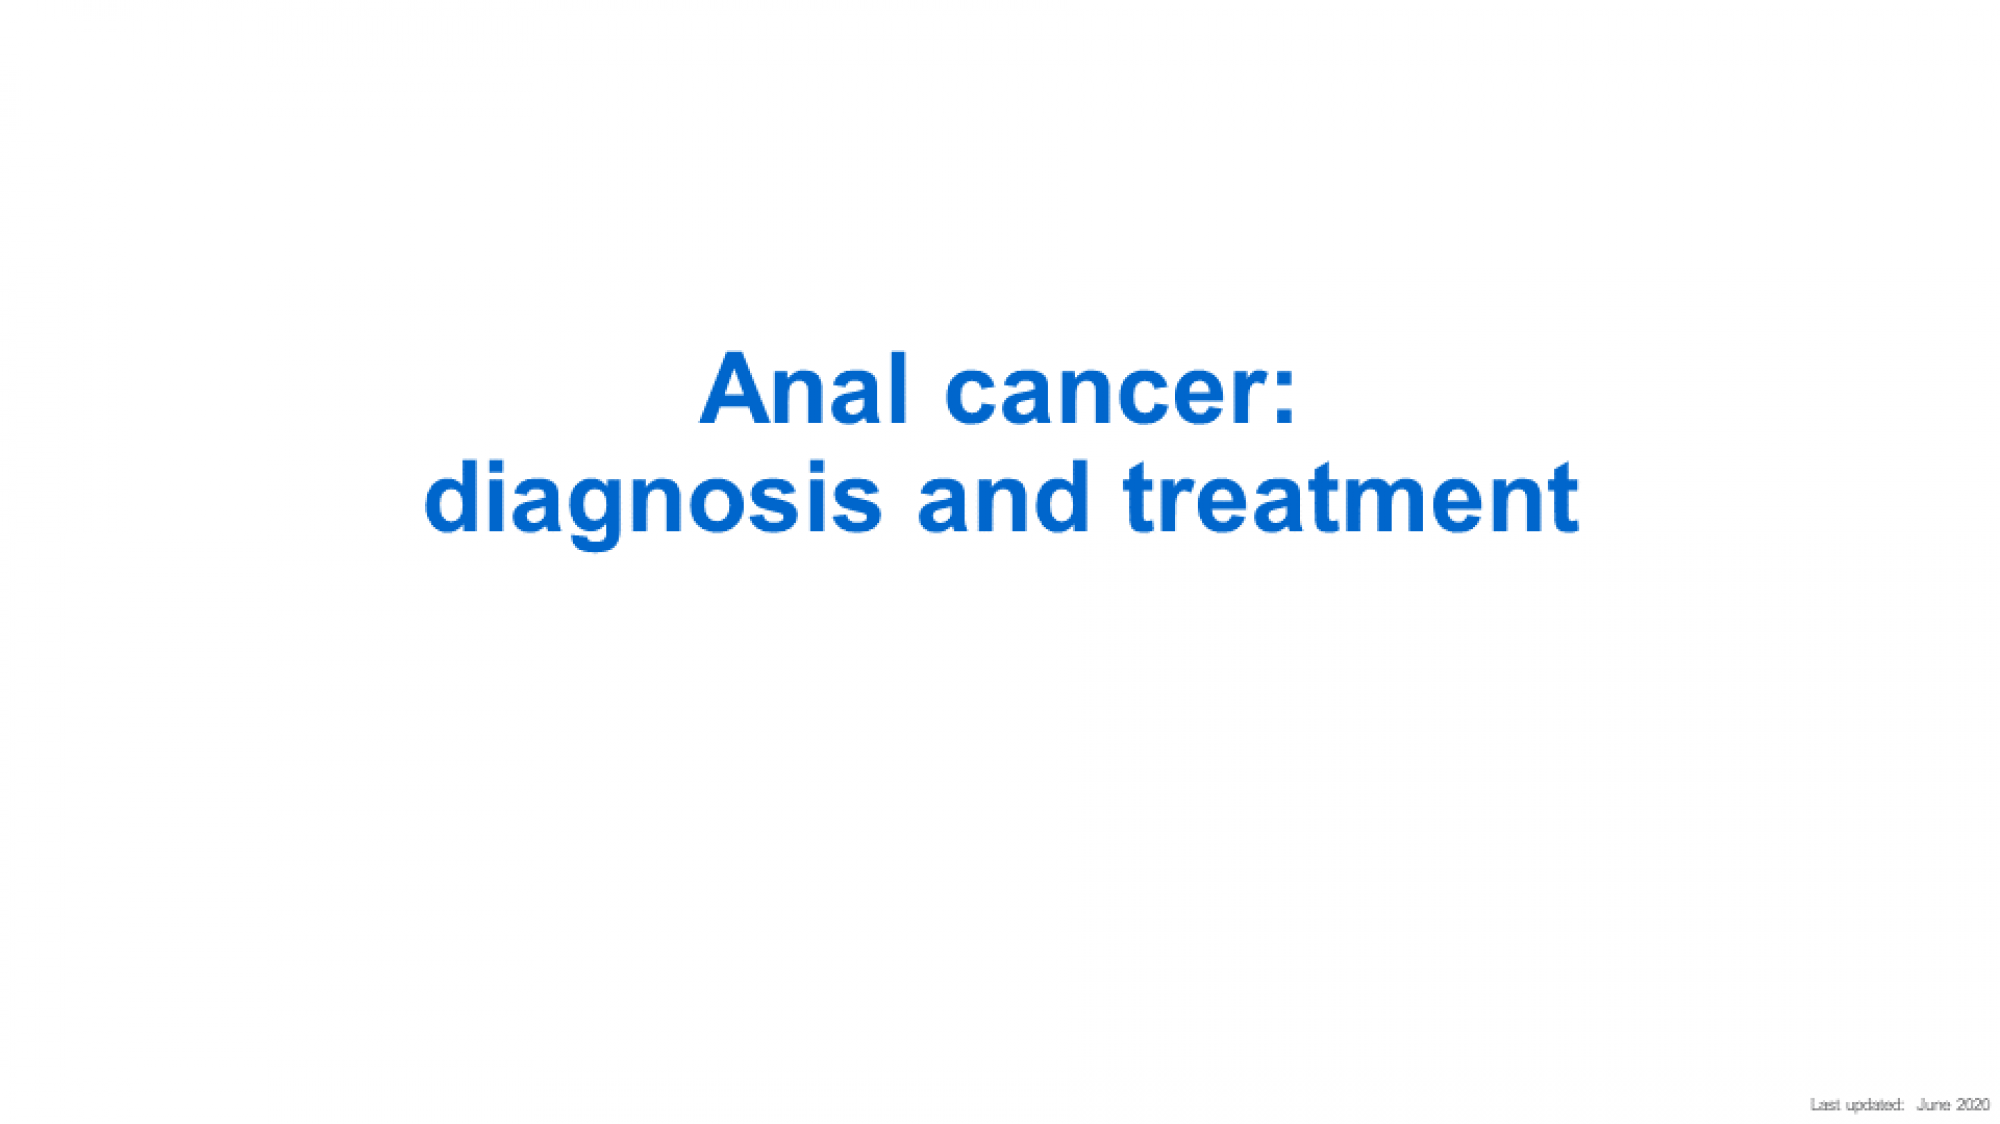 Anal cancer diagnosis and treatment - slide 1